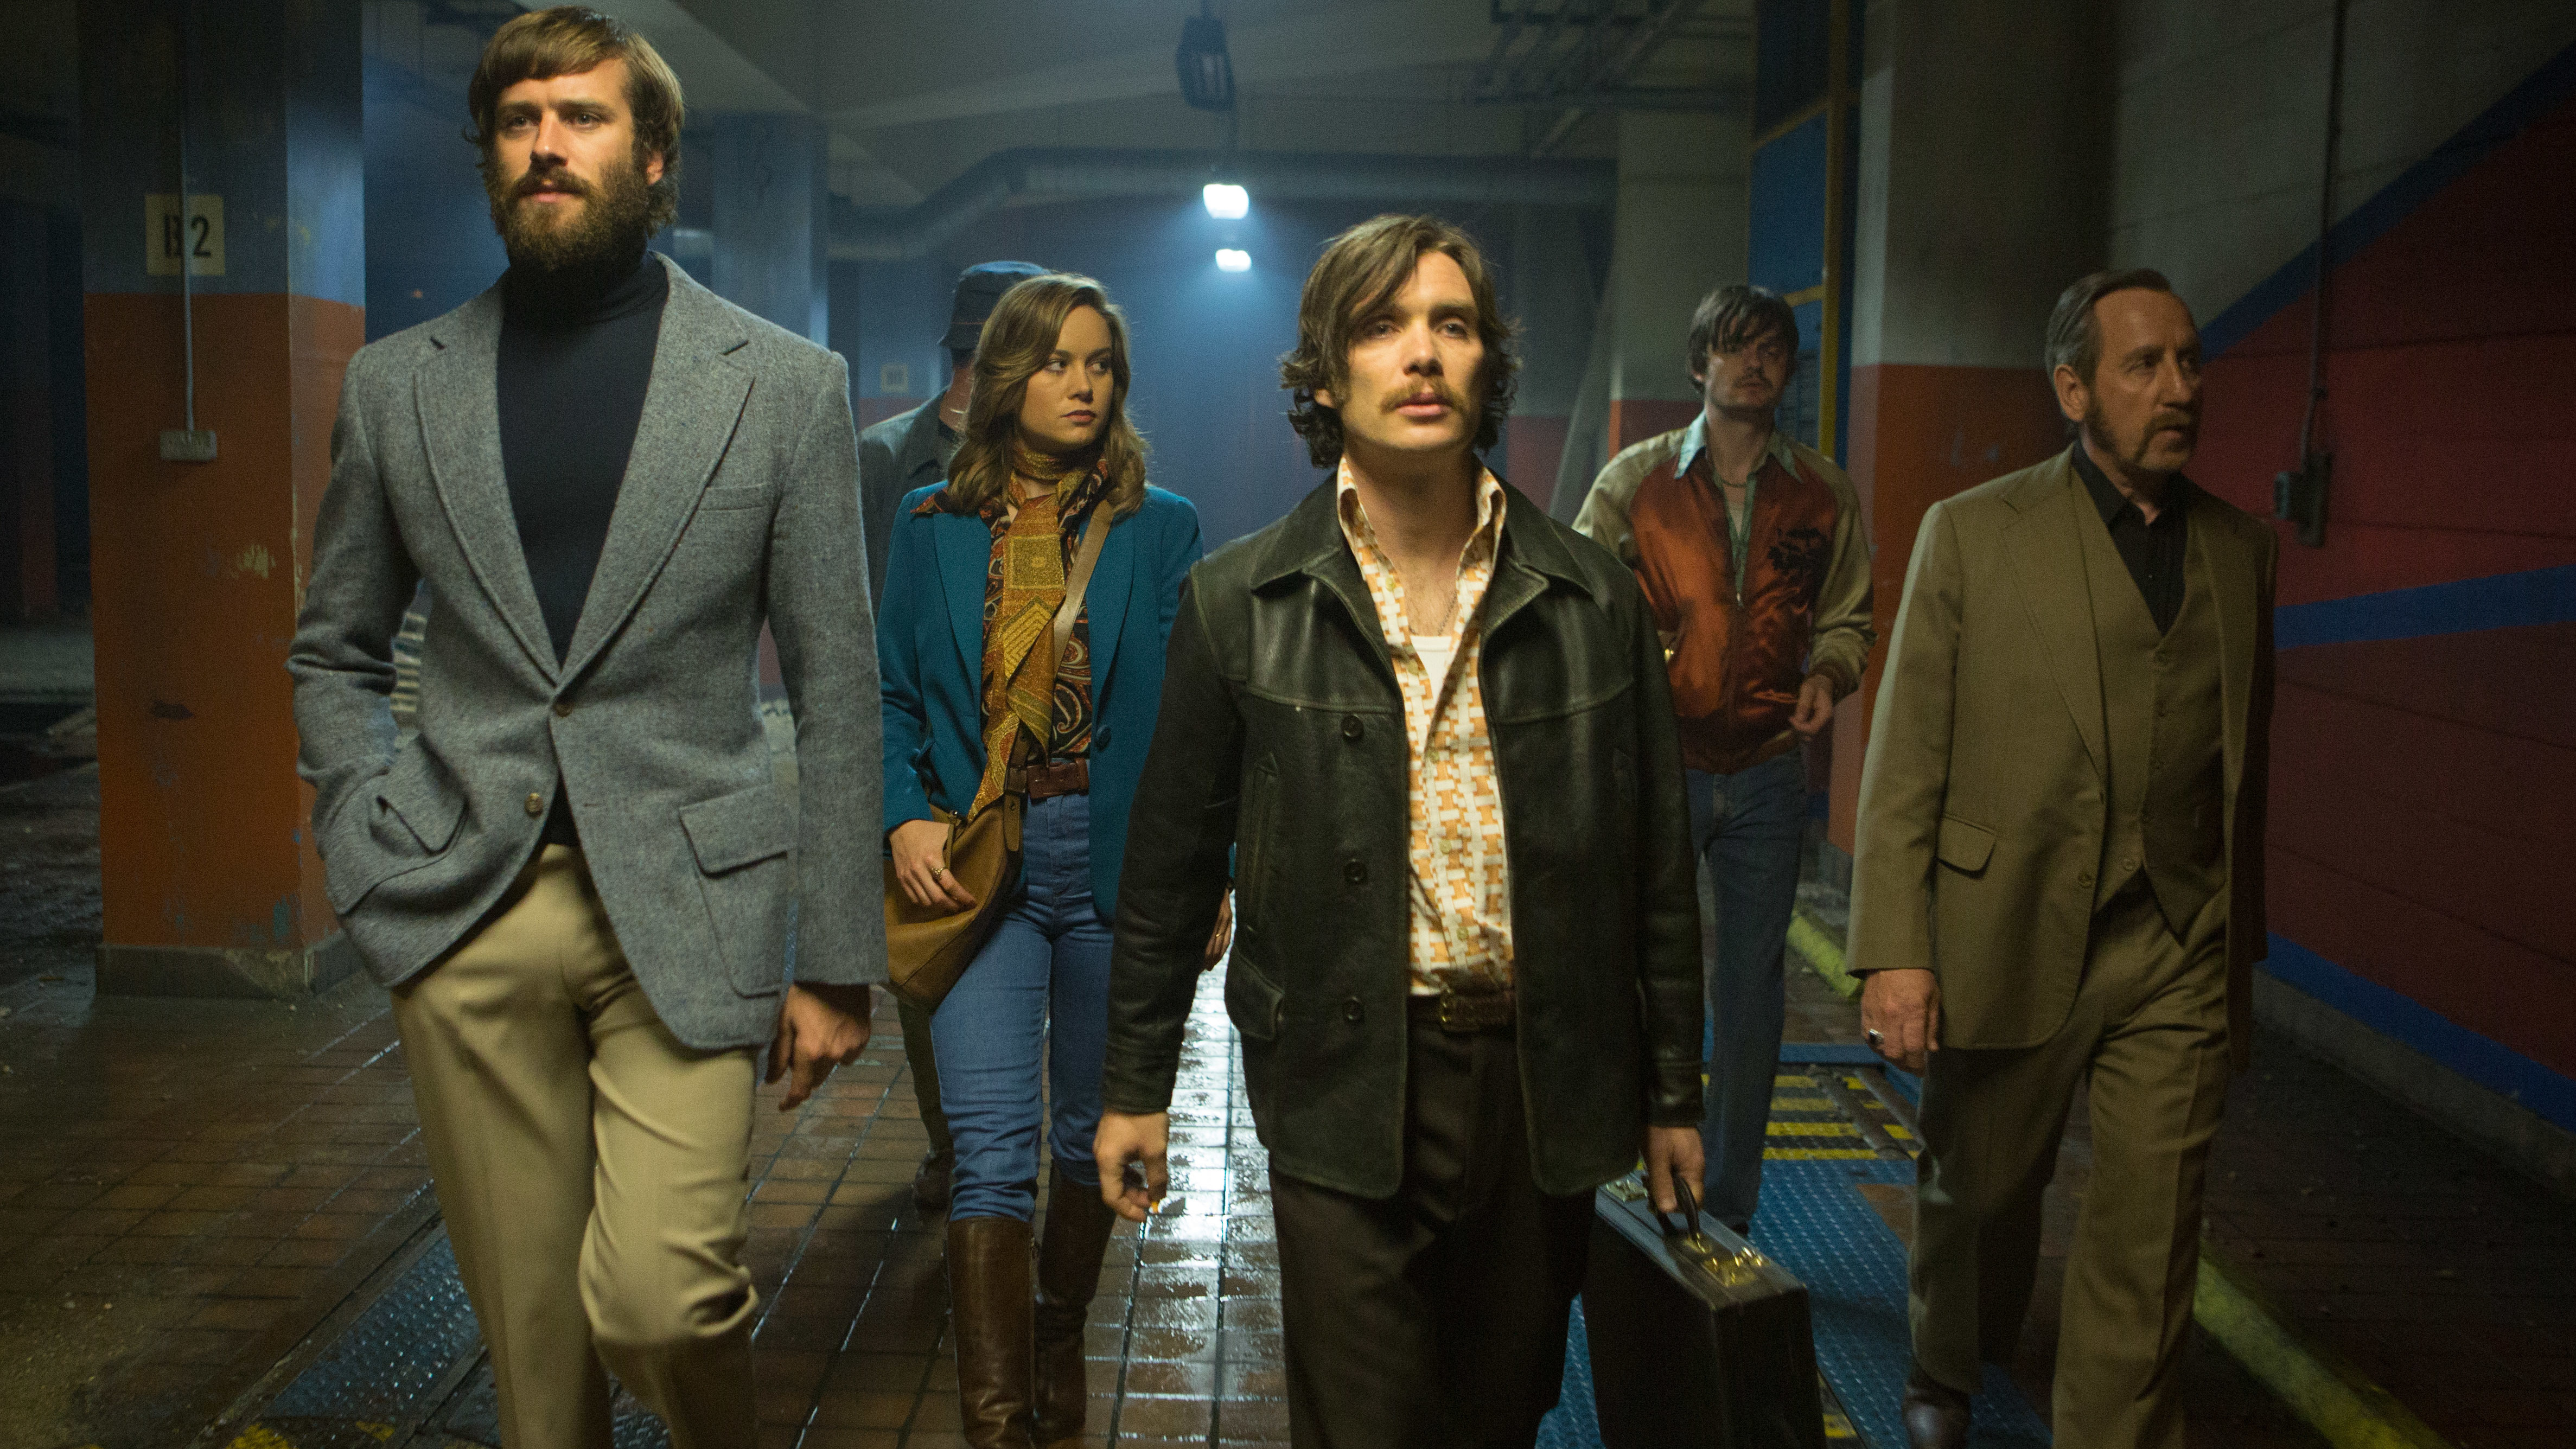 'Free Fire' is amusing, chaotic and frustrating